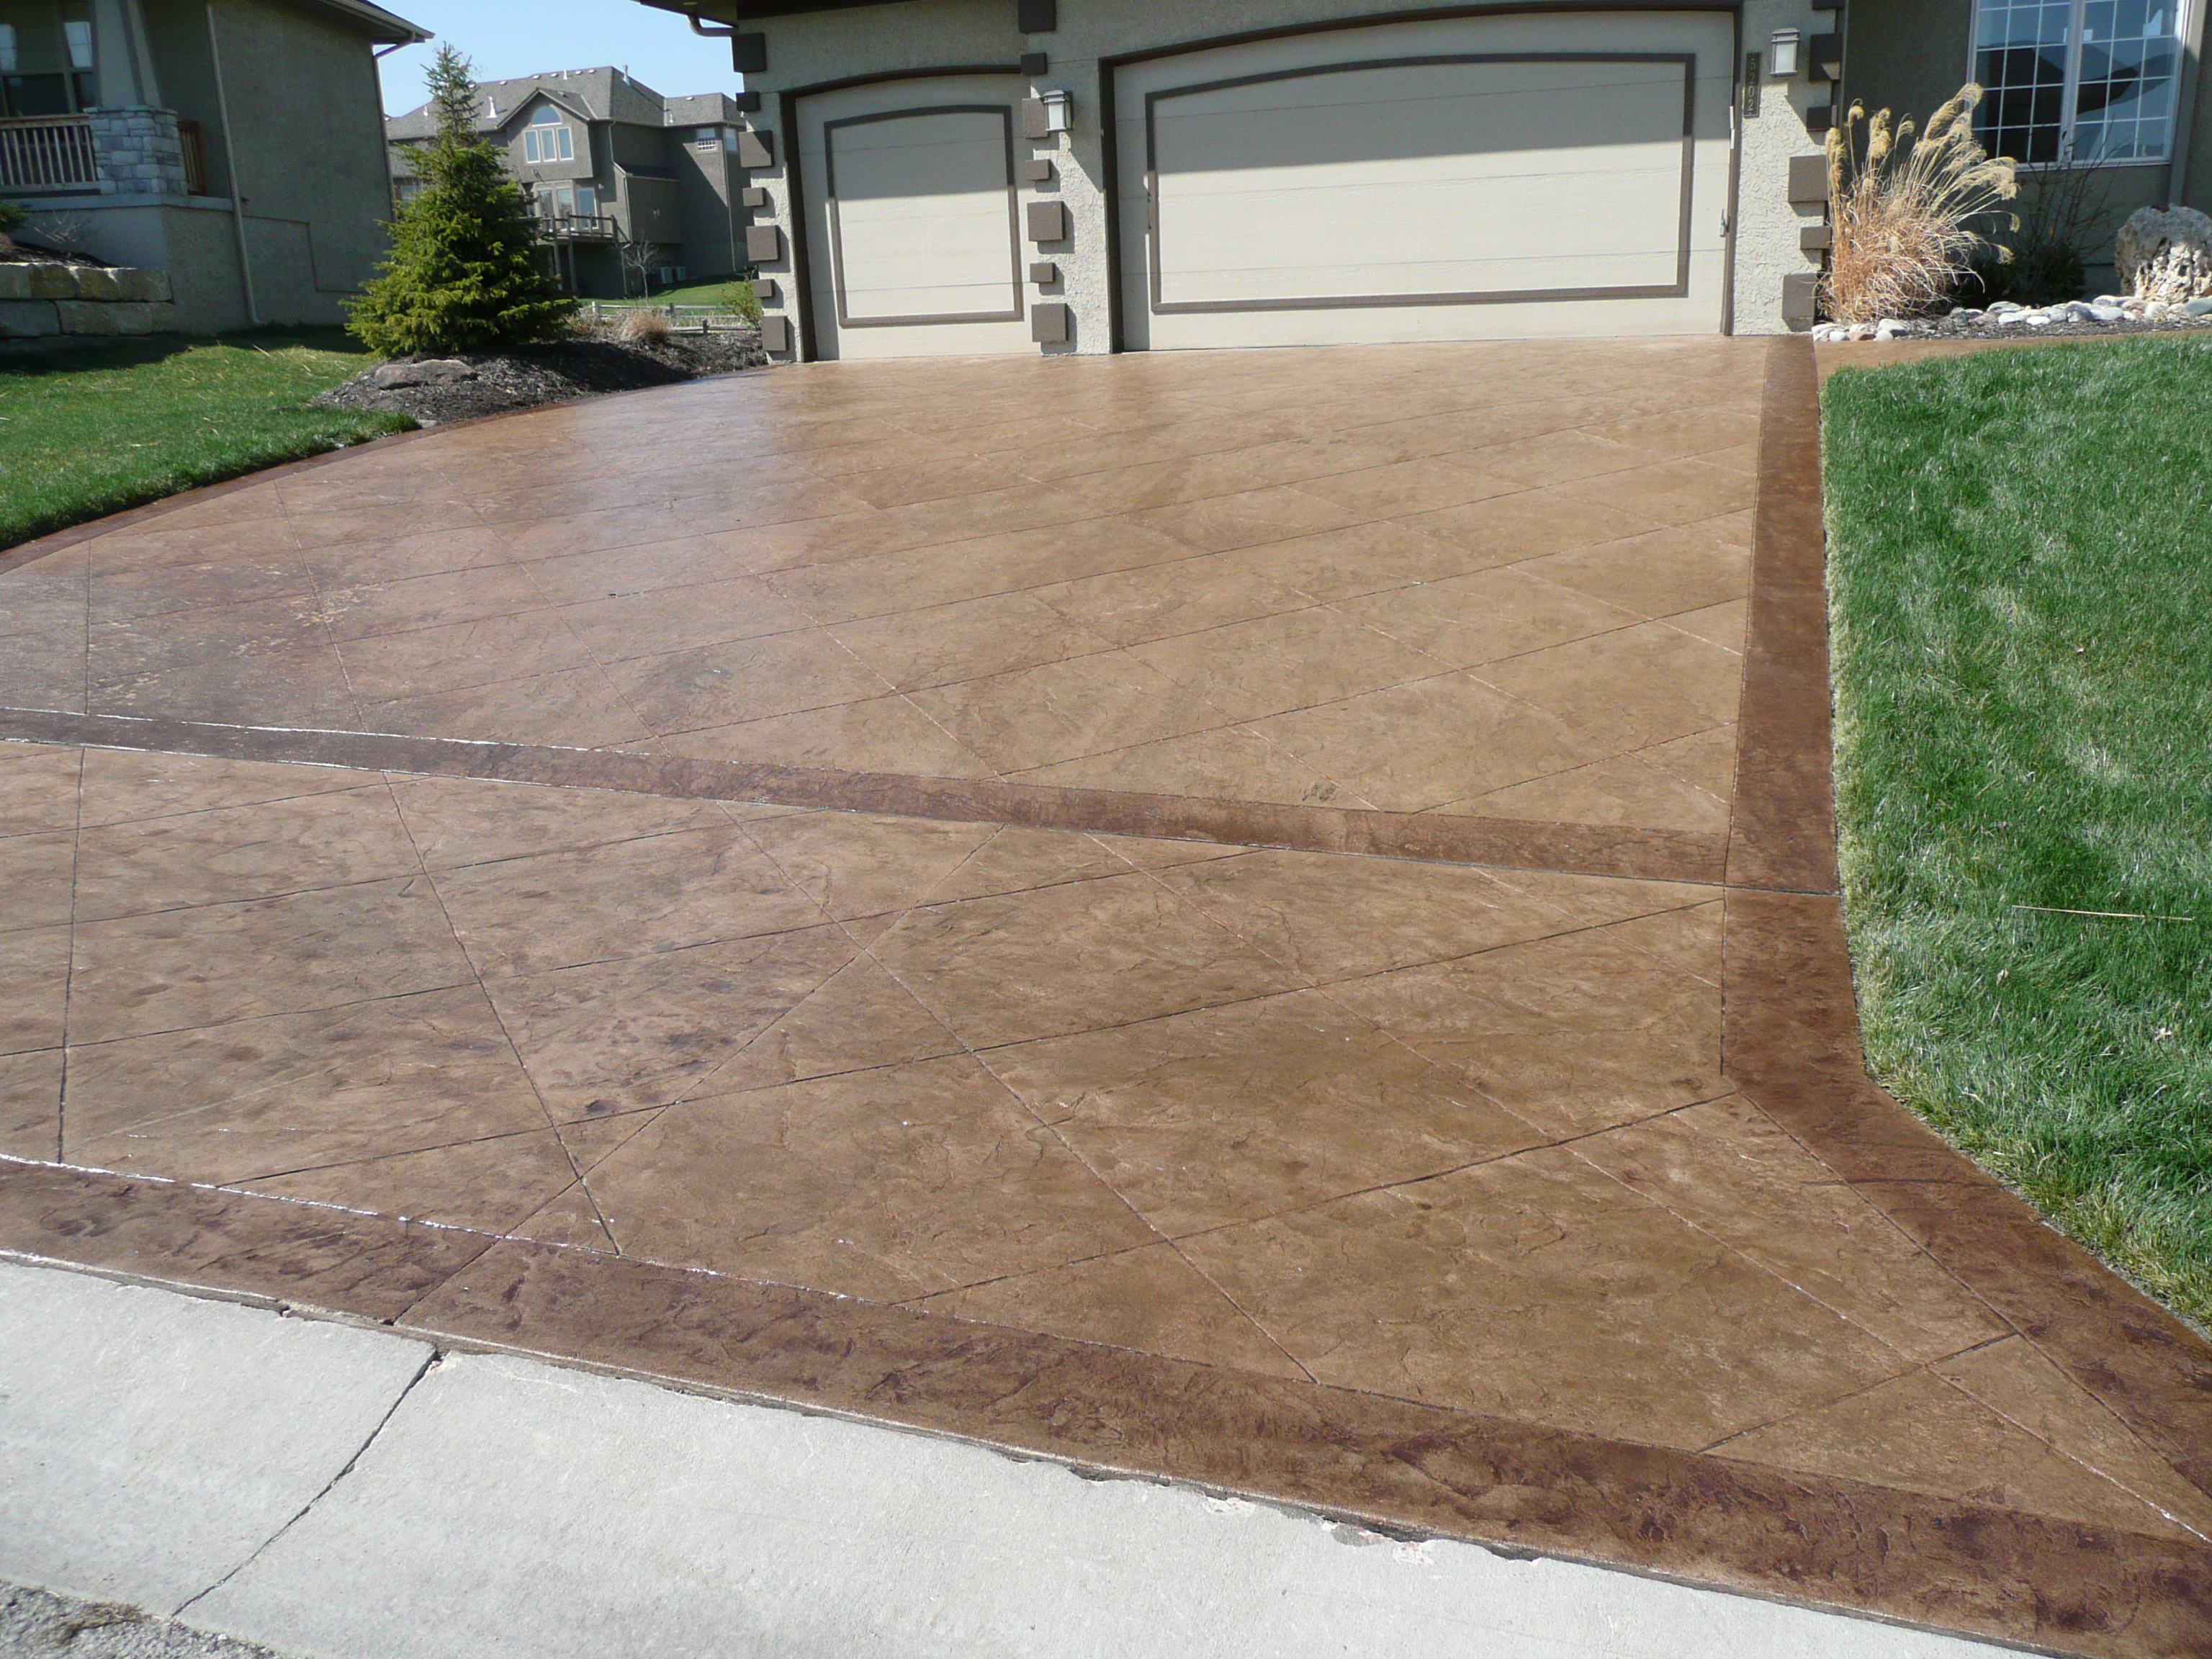 Decorative custom concrete driveway made by Aesthetic Concrete Designs.